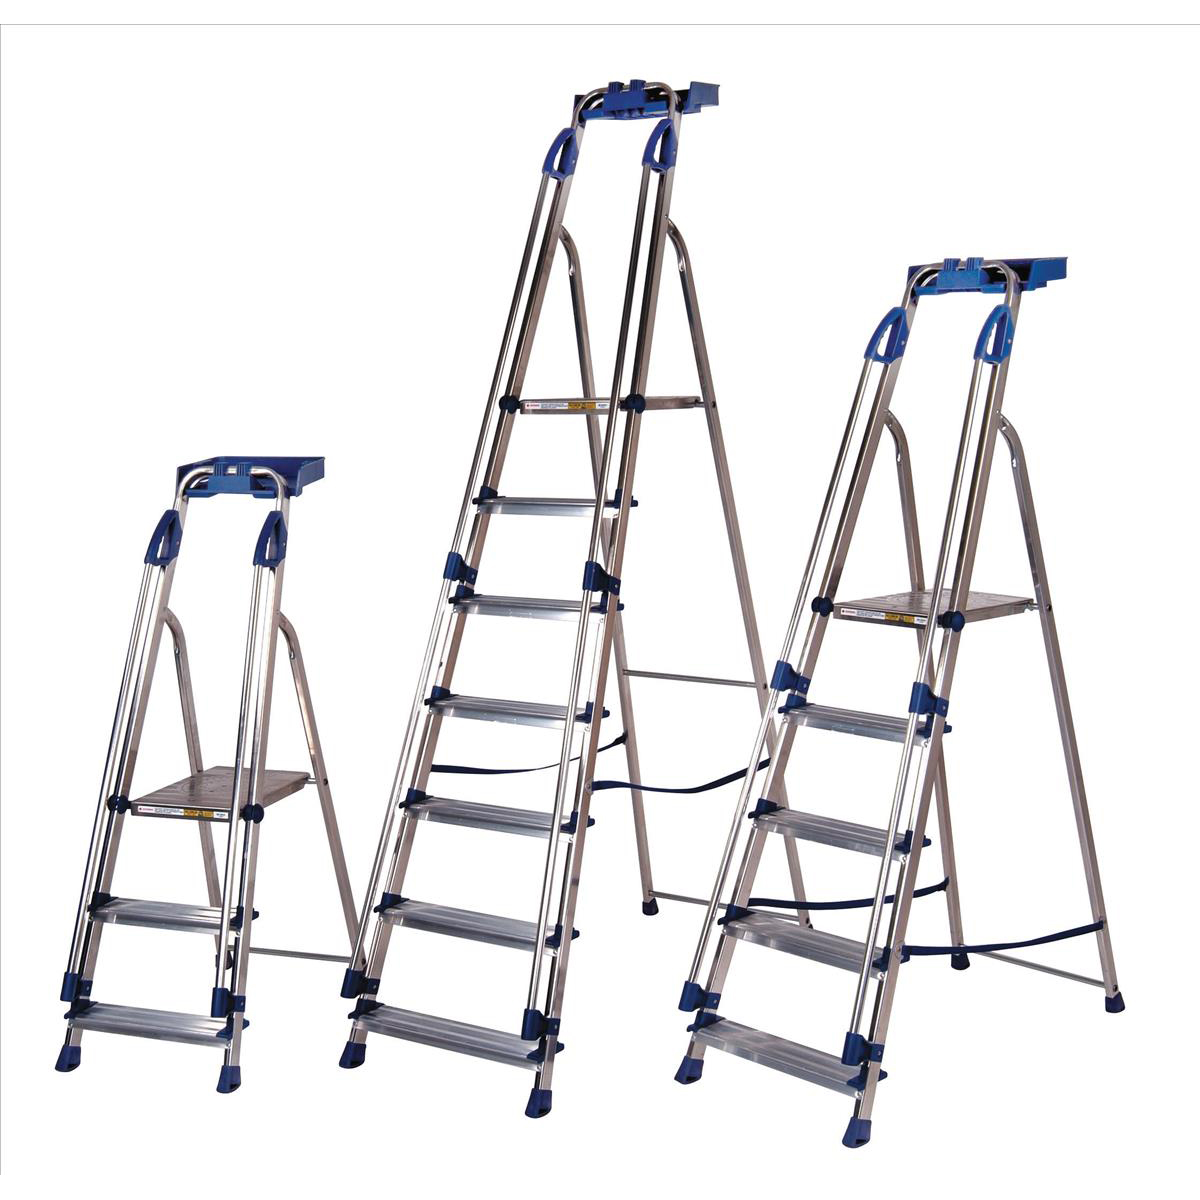 Tradesman Platform Step Ladder 5 Steps Capacity 150kg Silver/Blue